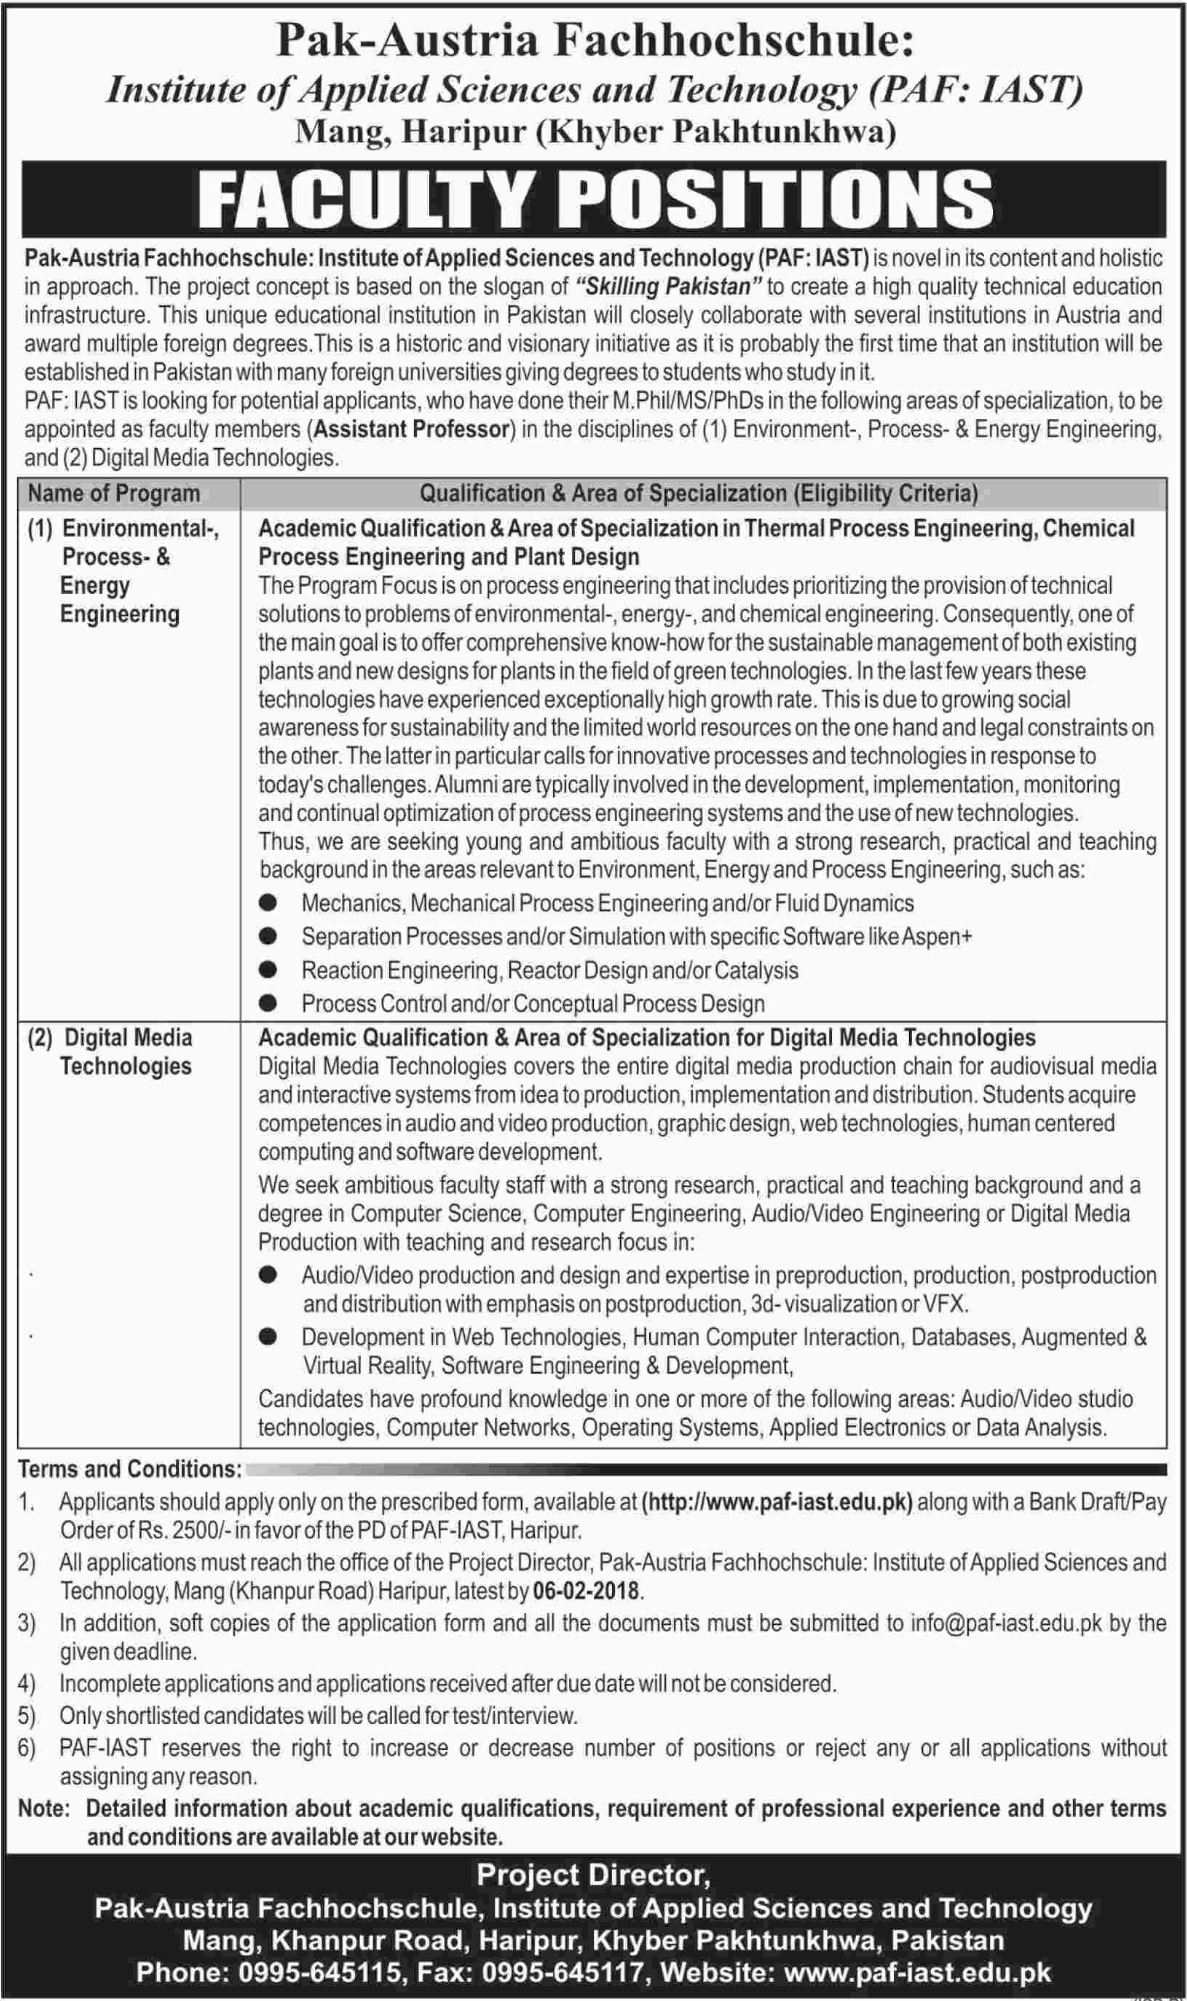 Institute Of Applied Sciences And Technology Haripur Jobs